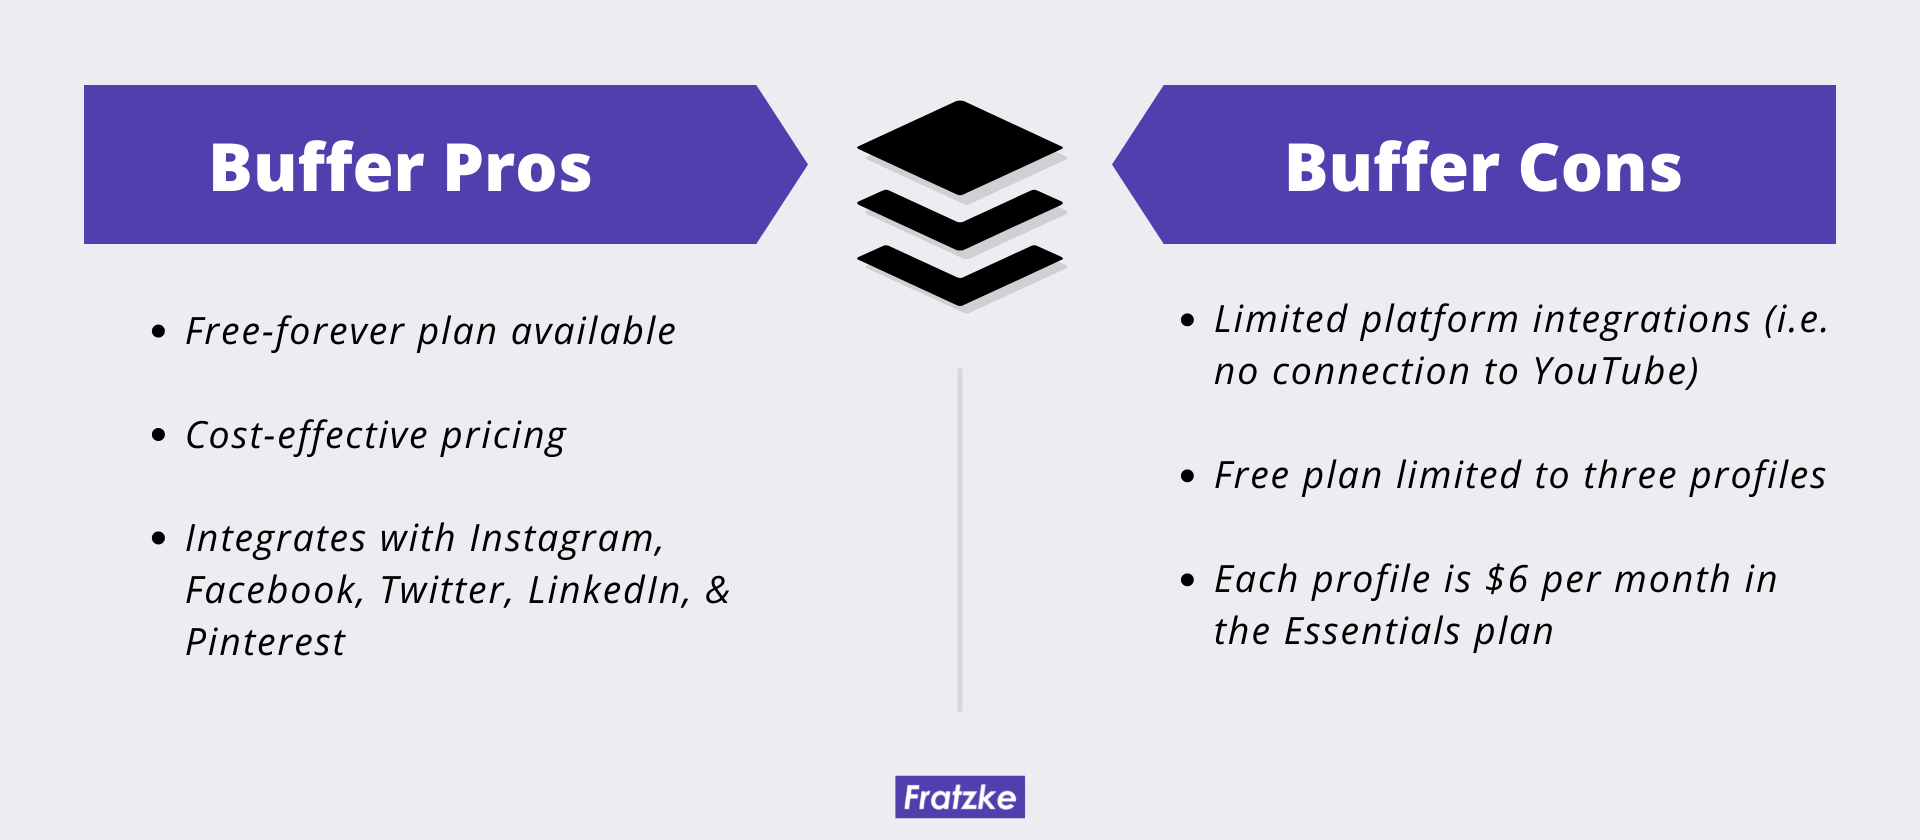 Buffer Pros and Cons